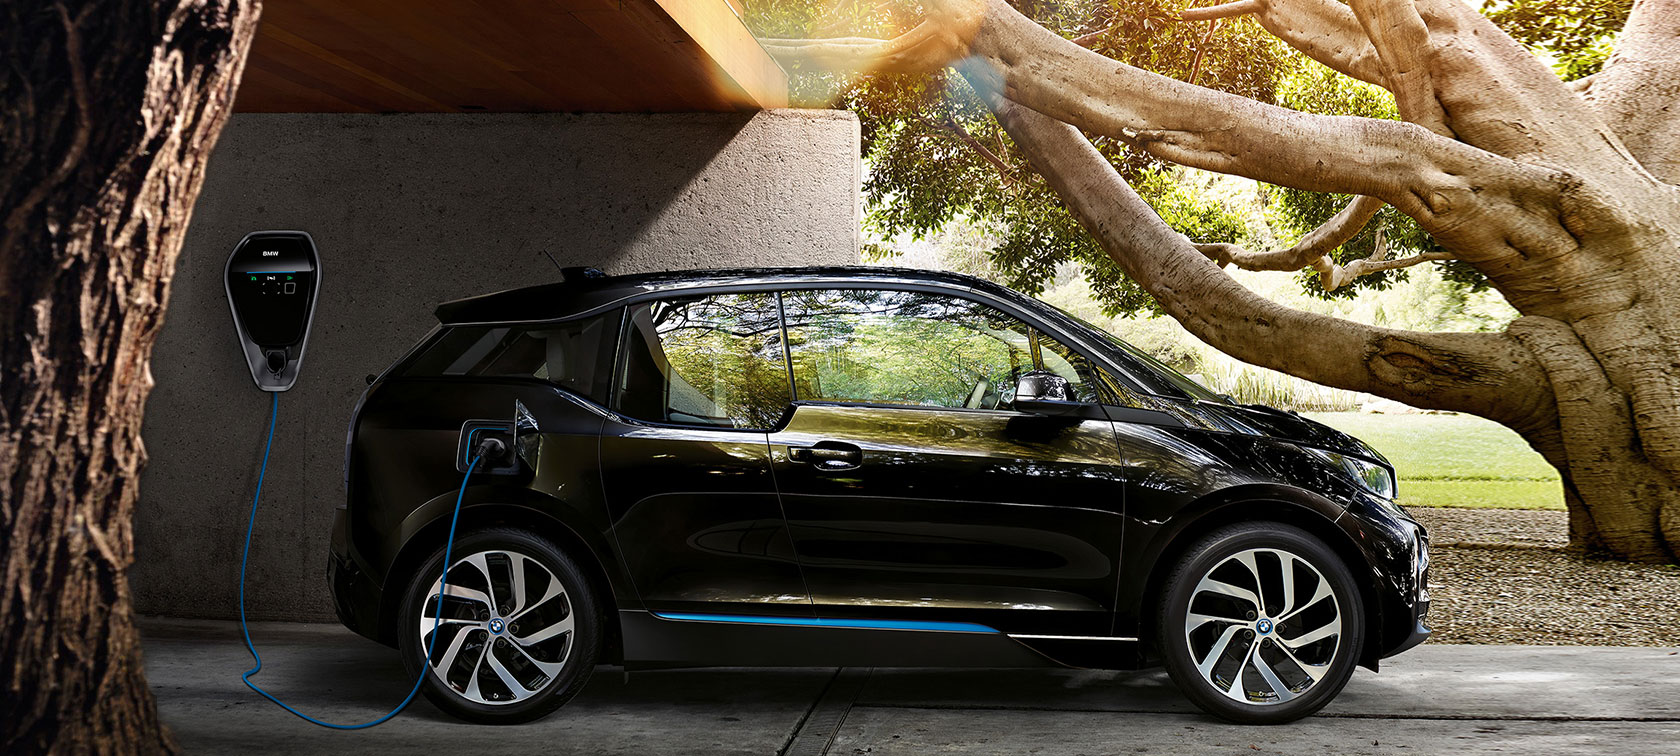 BMW black:sustainable charging